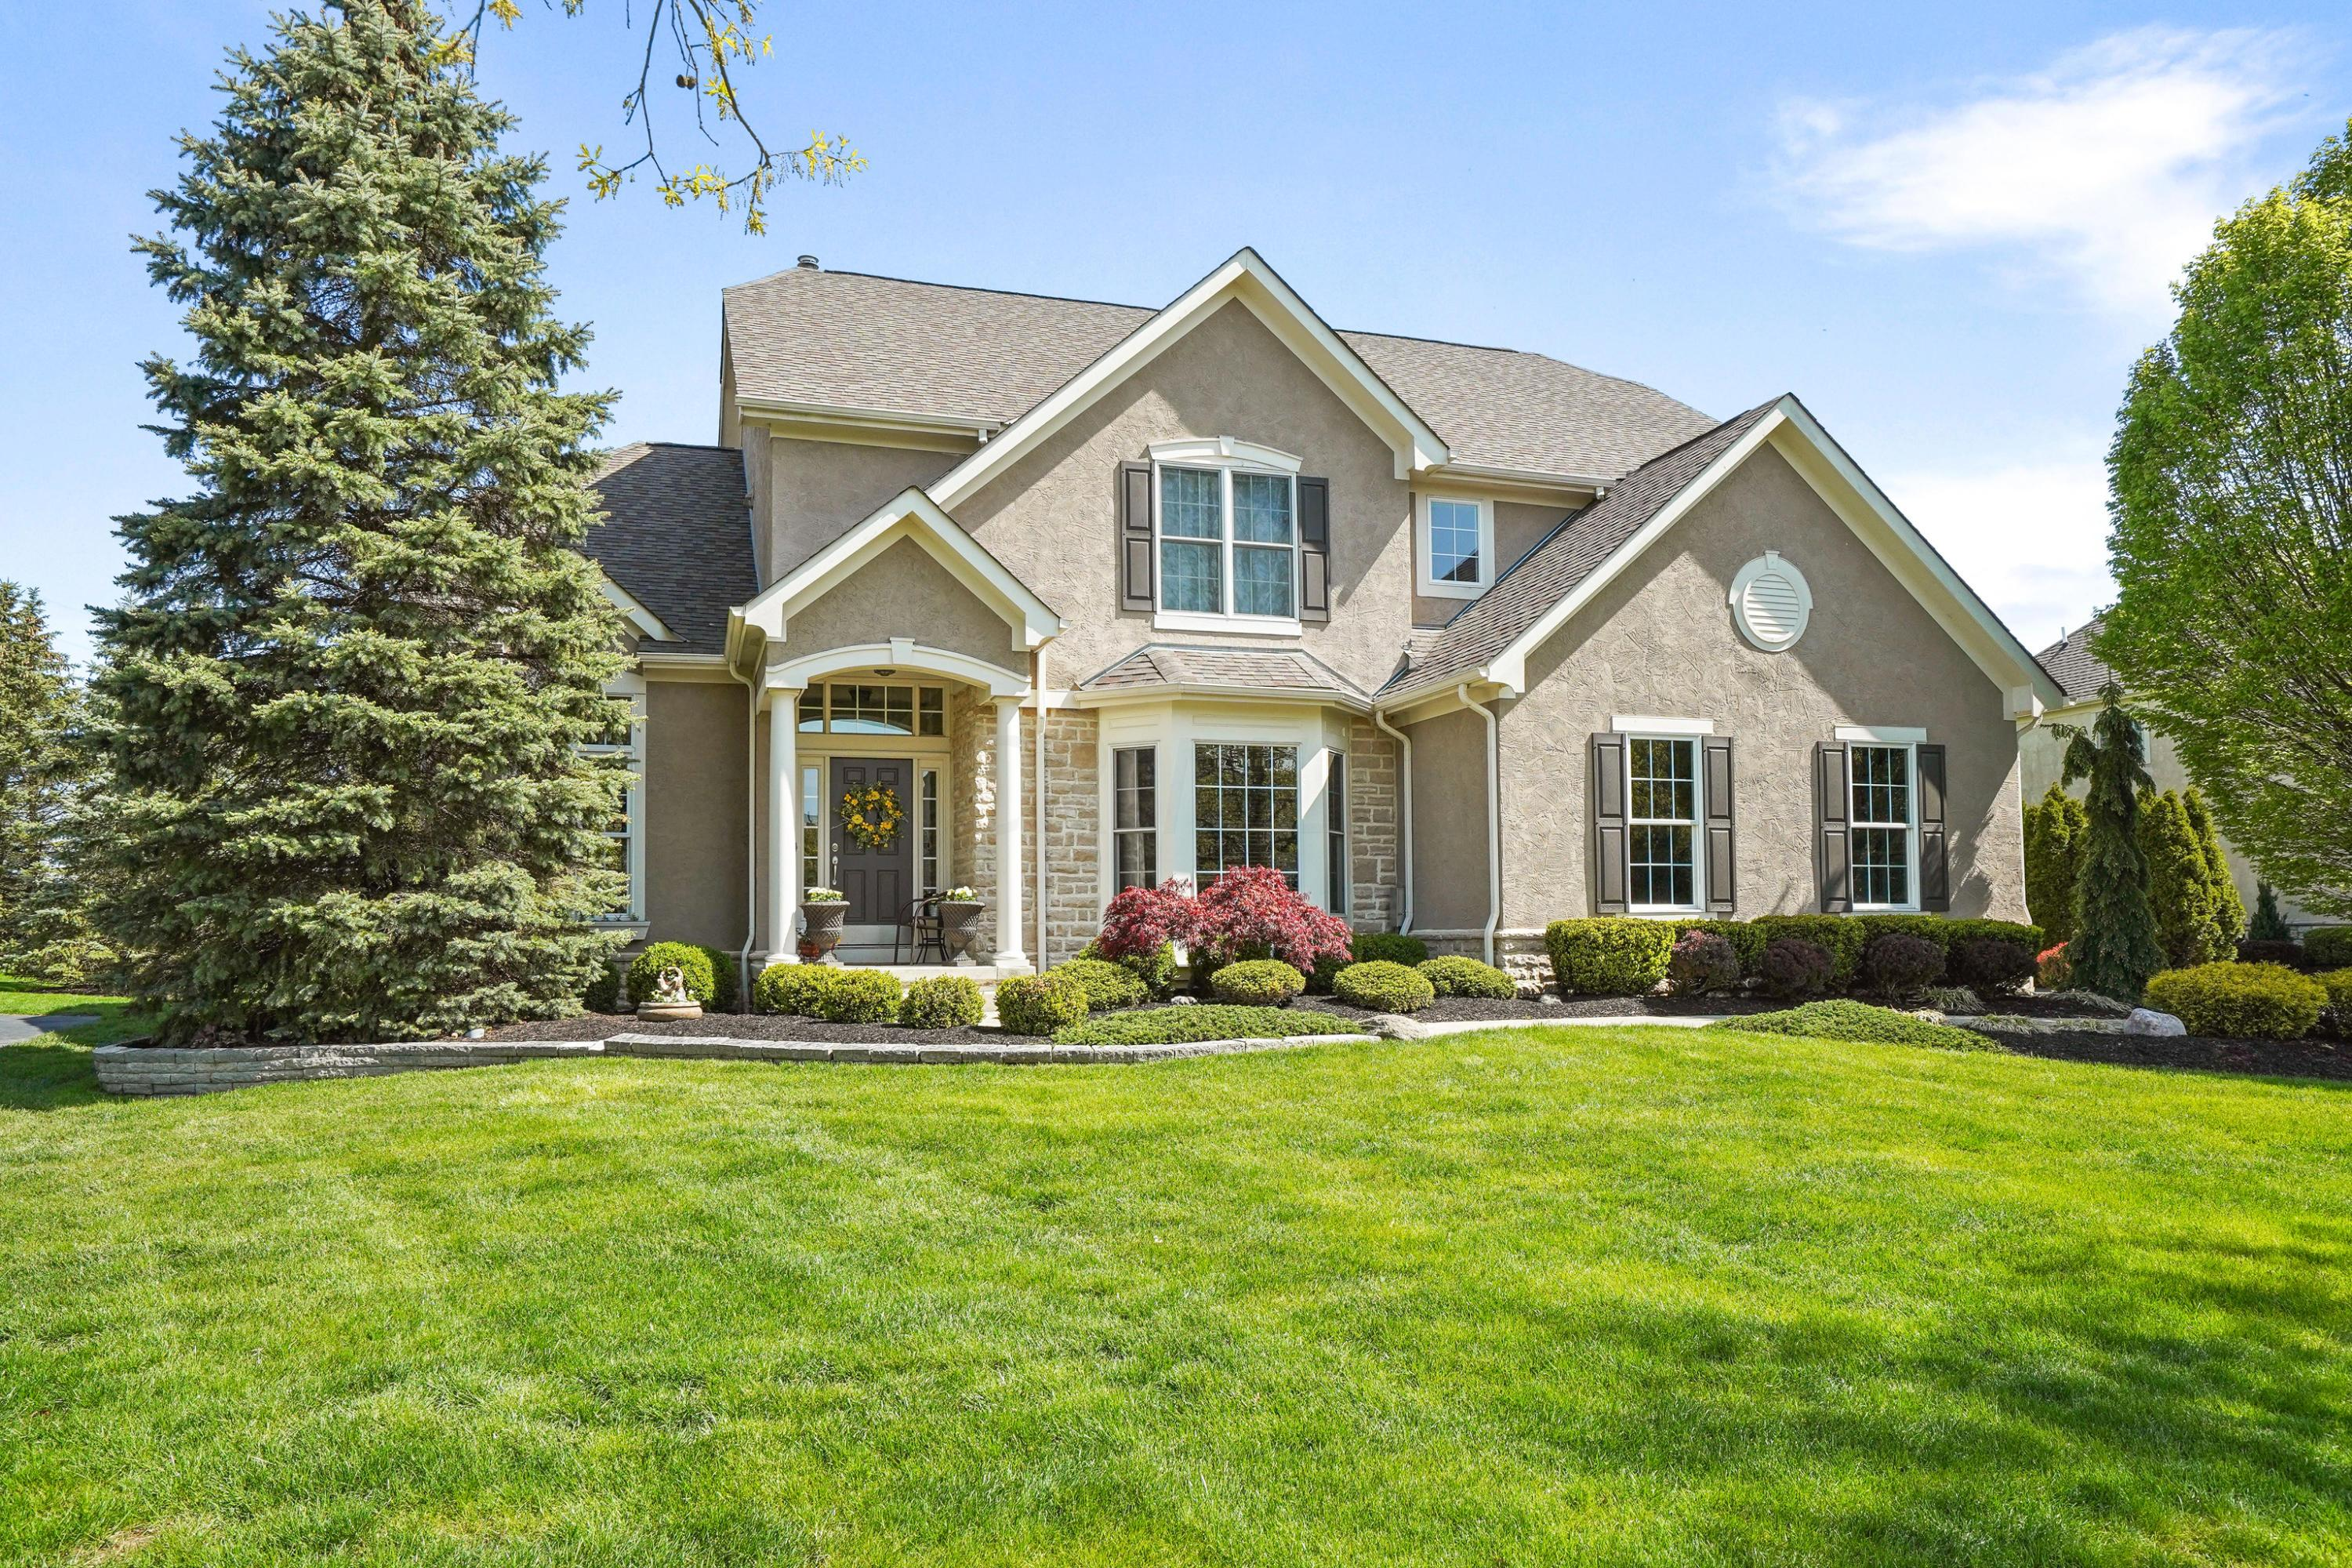 7188 Rob Roy Drive, Dublin, Ohio 43017, 4 Bedrooms Bedrooms, ,5 BathroomsBathrooms,Residential,For Sale,Rob Roy,220018090